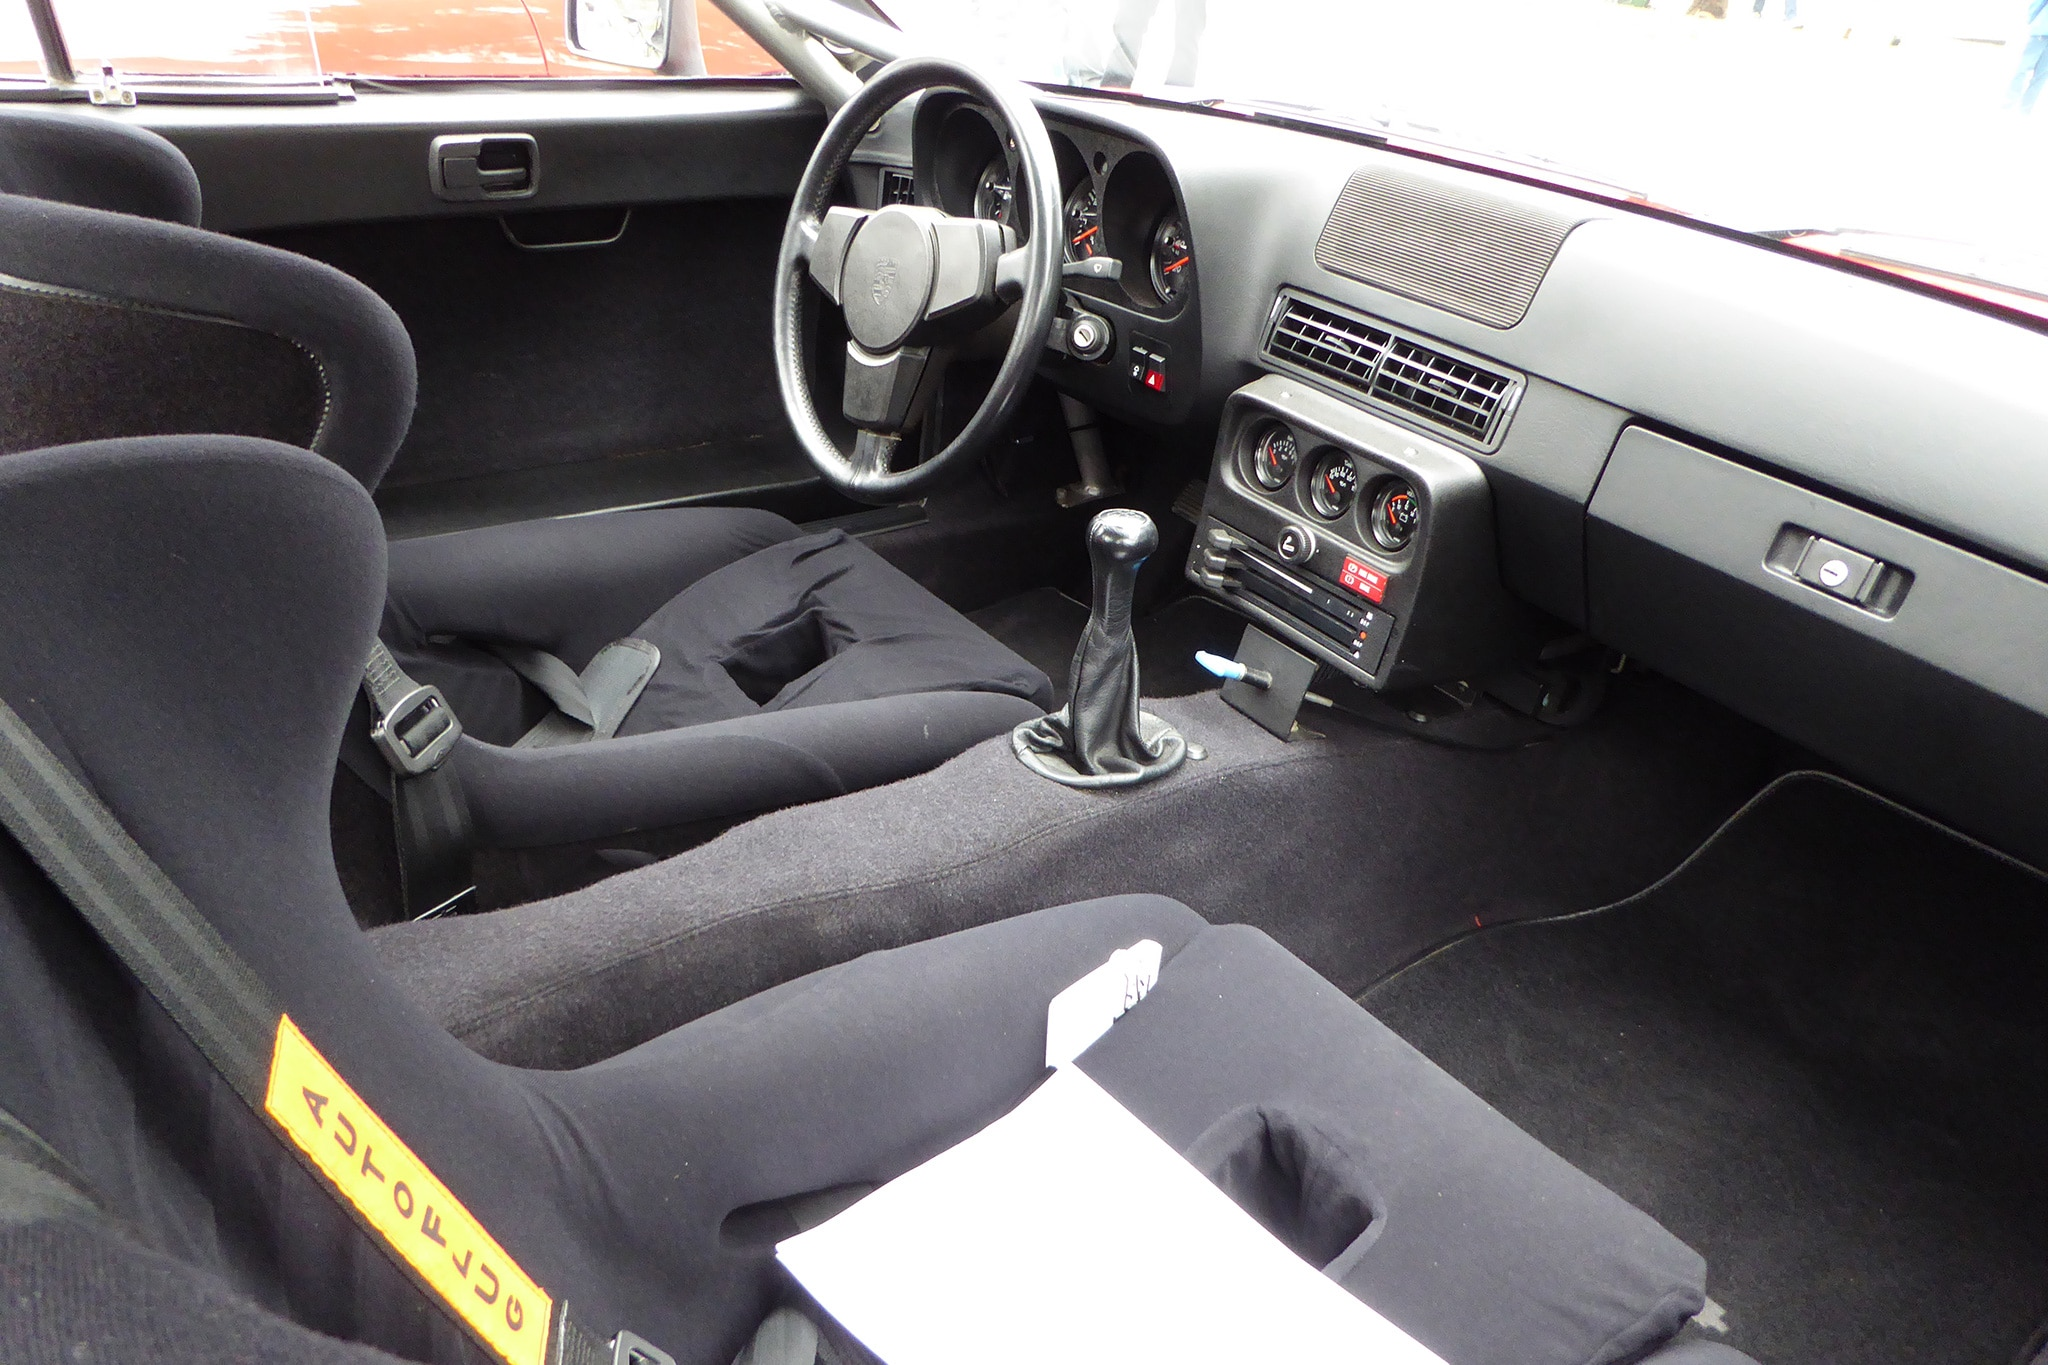 Porsche 924 Interieur Of Pebble Beach Concours D 39 Elegance Automobile